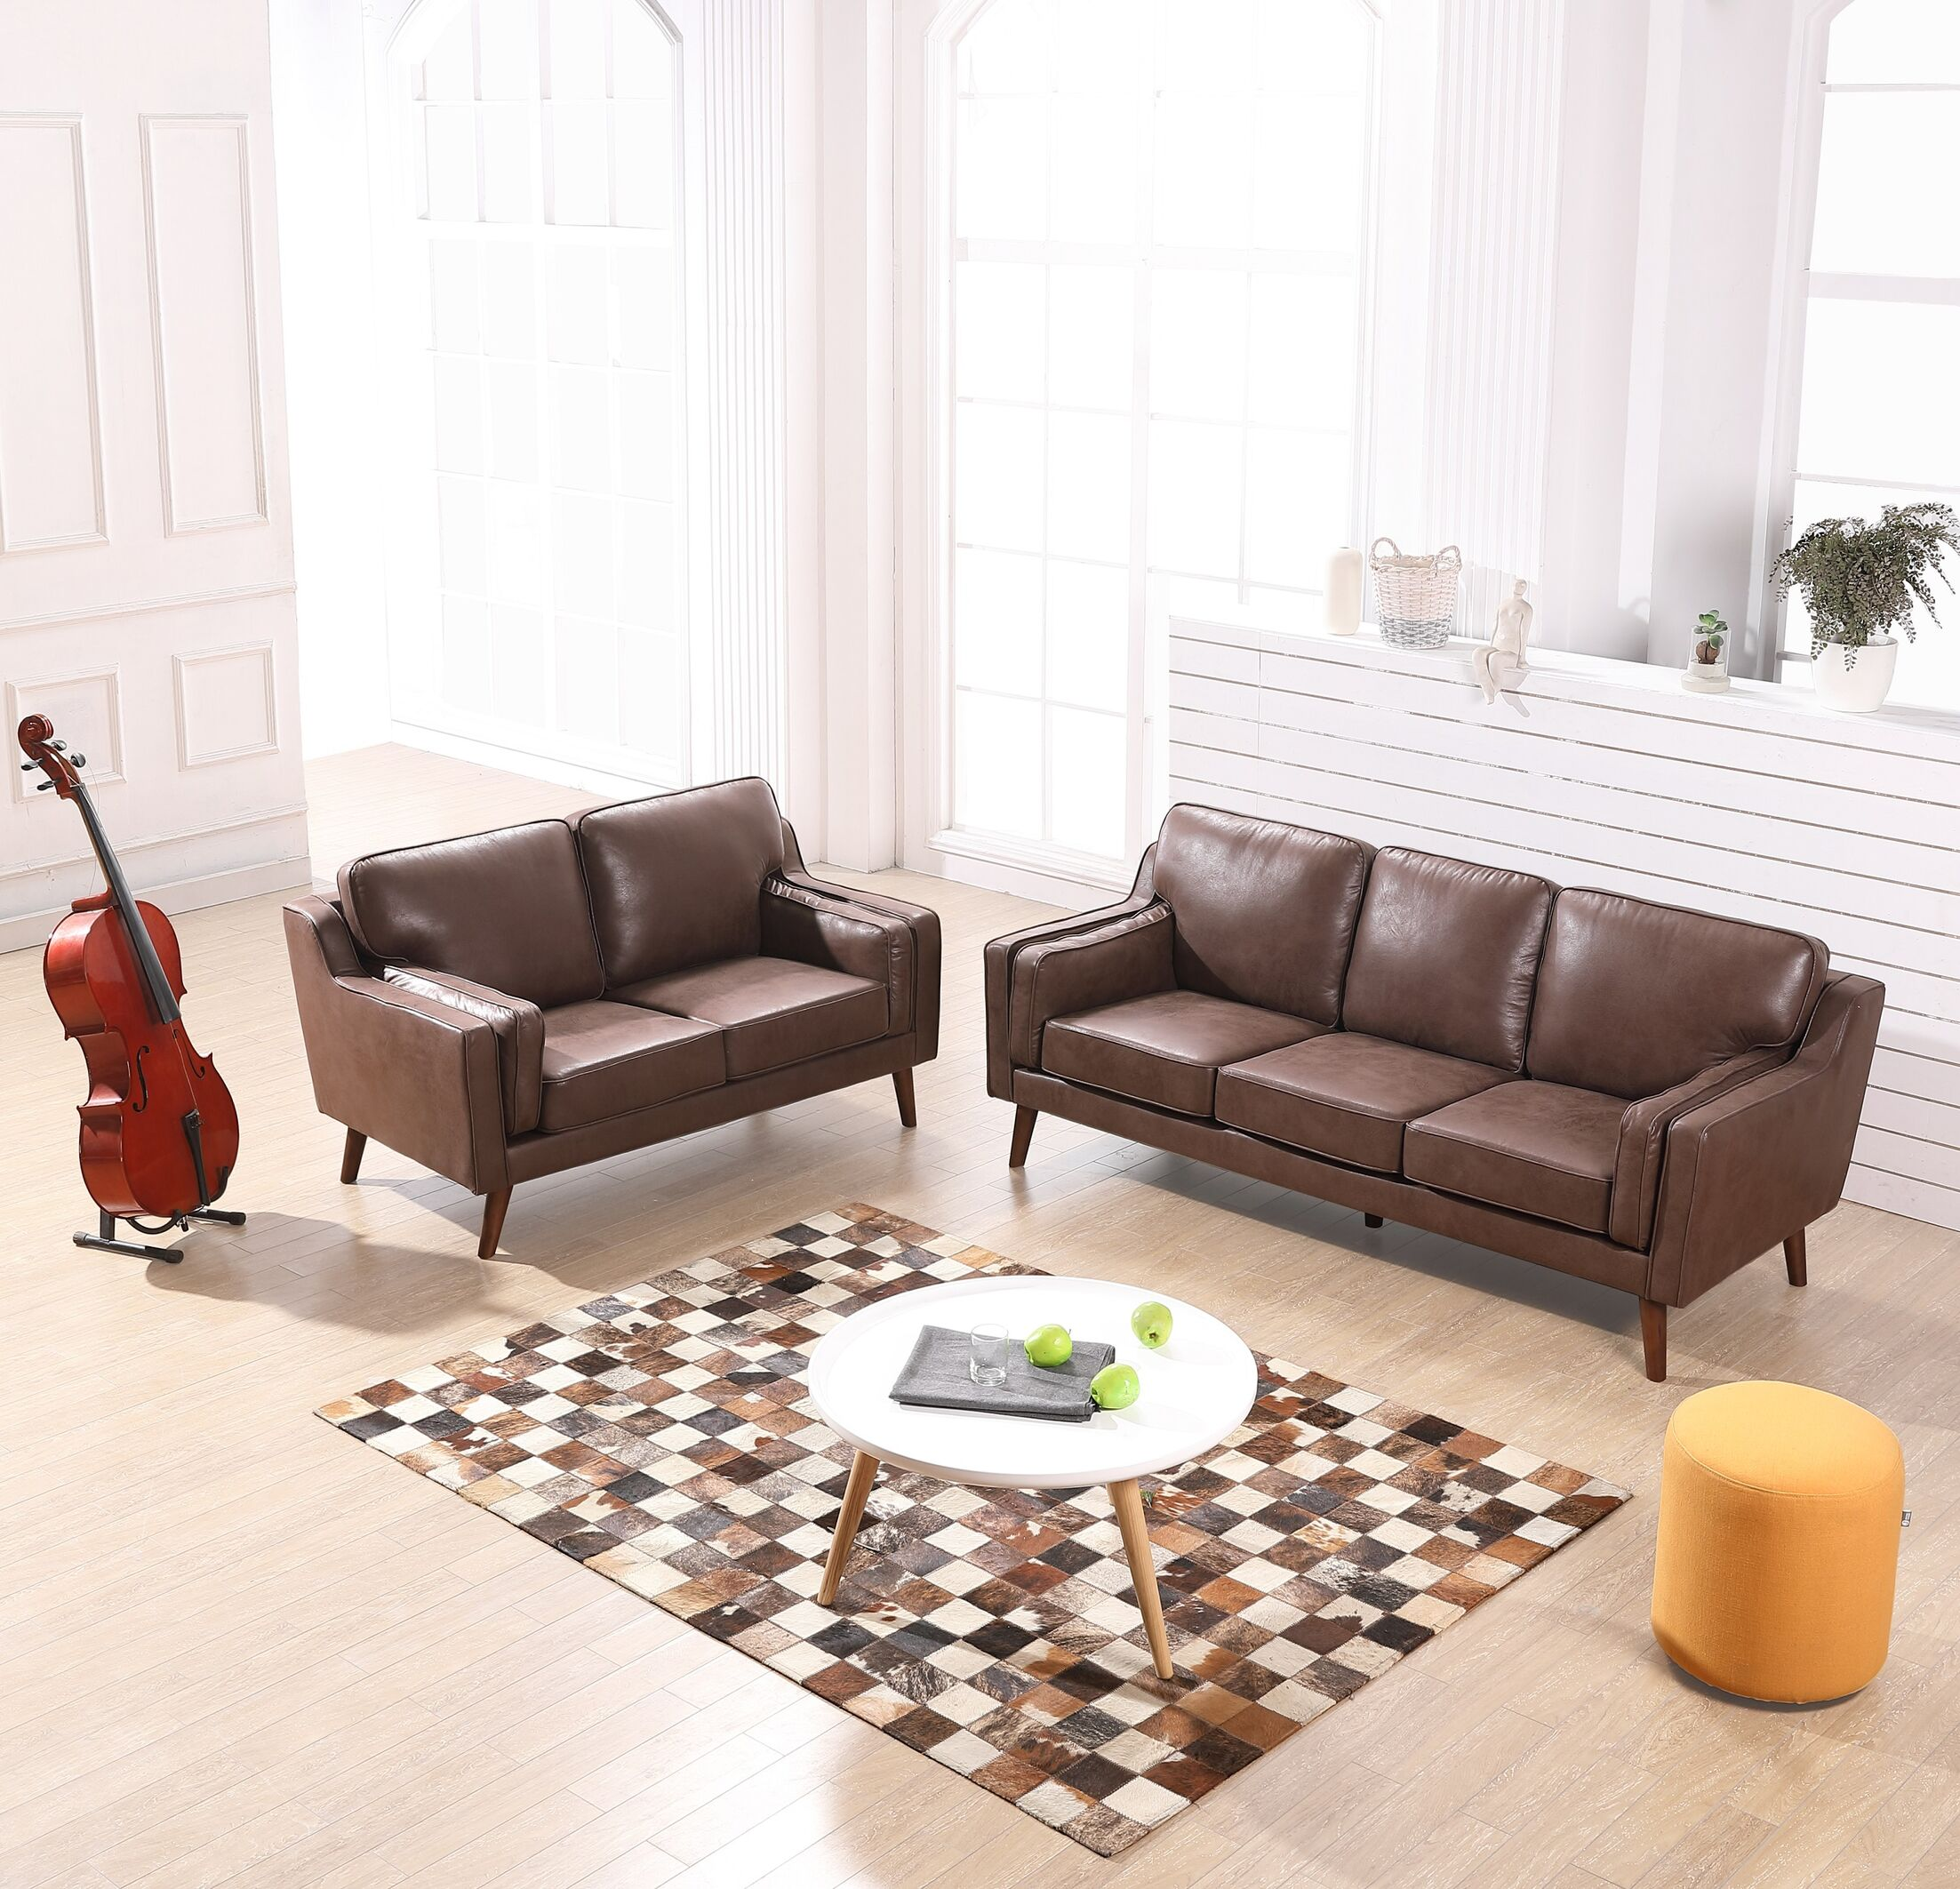 Westbury Modern Luxurious 2 Piece Leather Living Room Set Upholstery: Brown/Tan